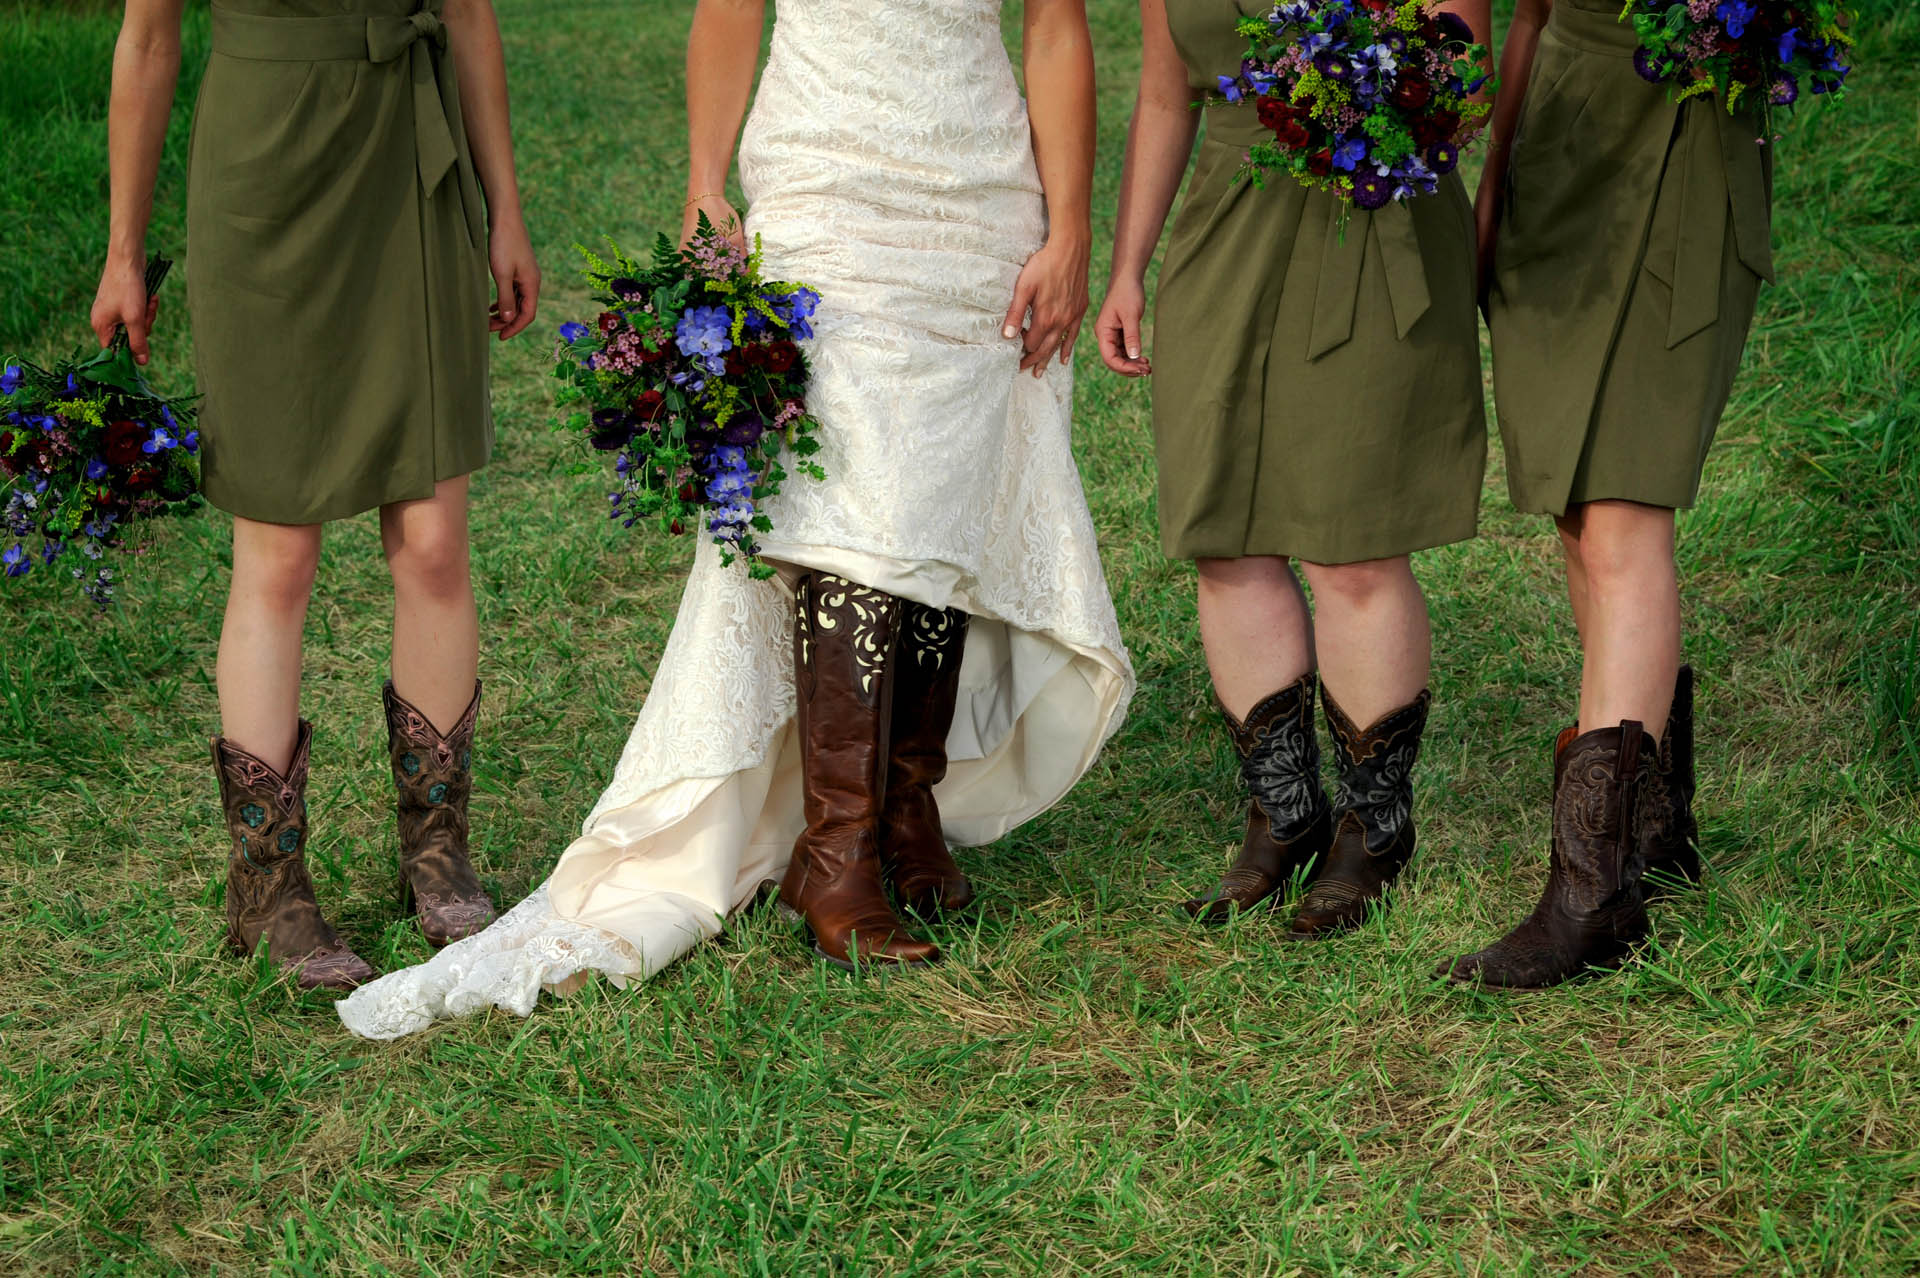 Michigan country wedding wedding photographer shoots the cowboy boots on the bridesmaids during a farm Michigan country wedding.